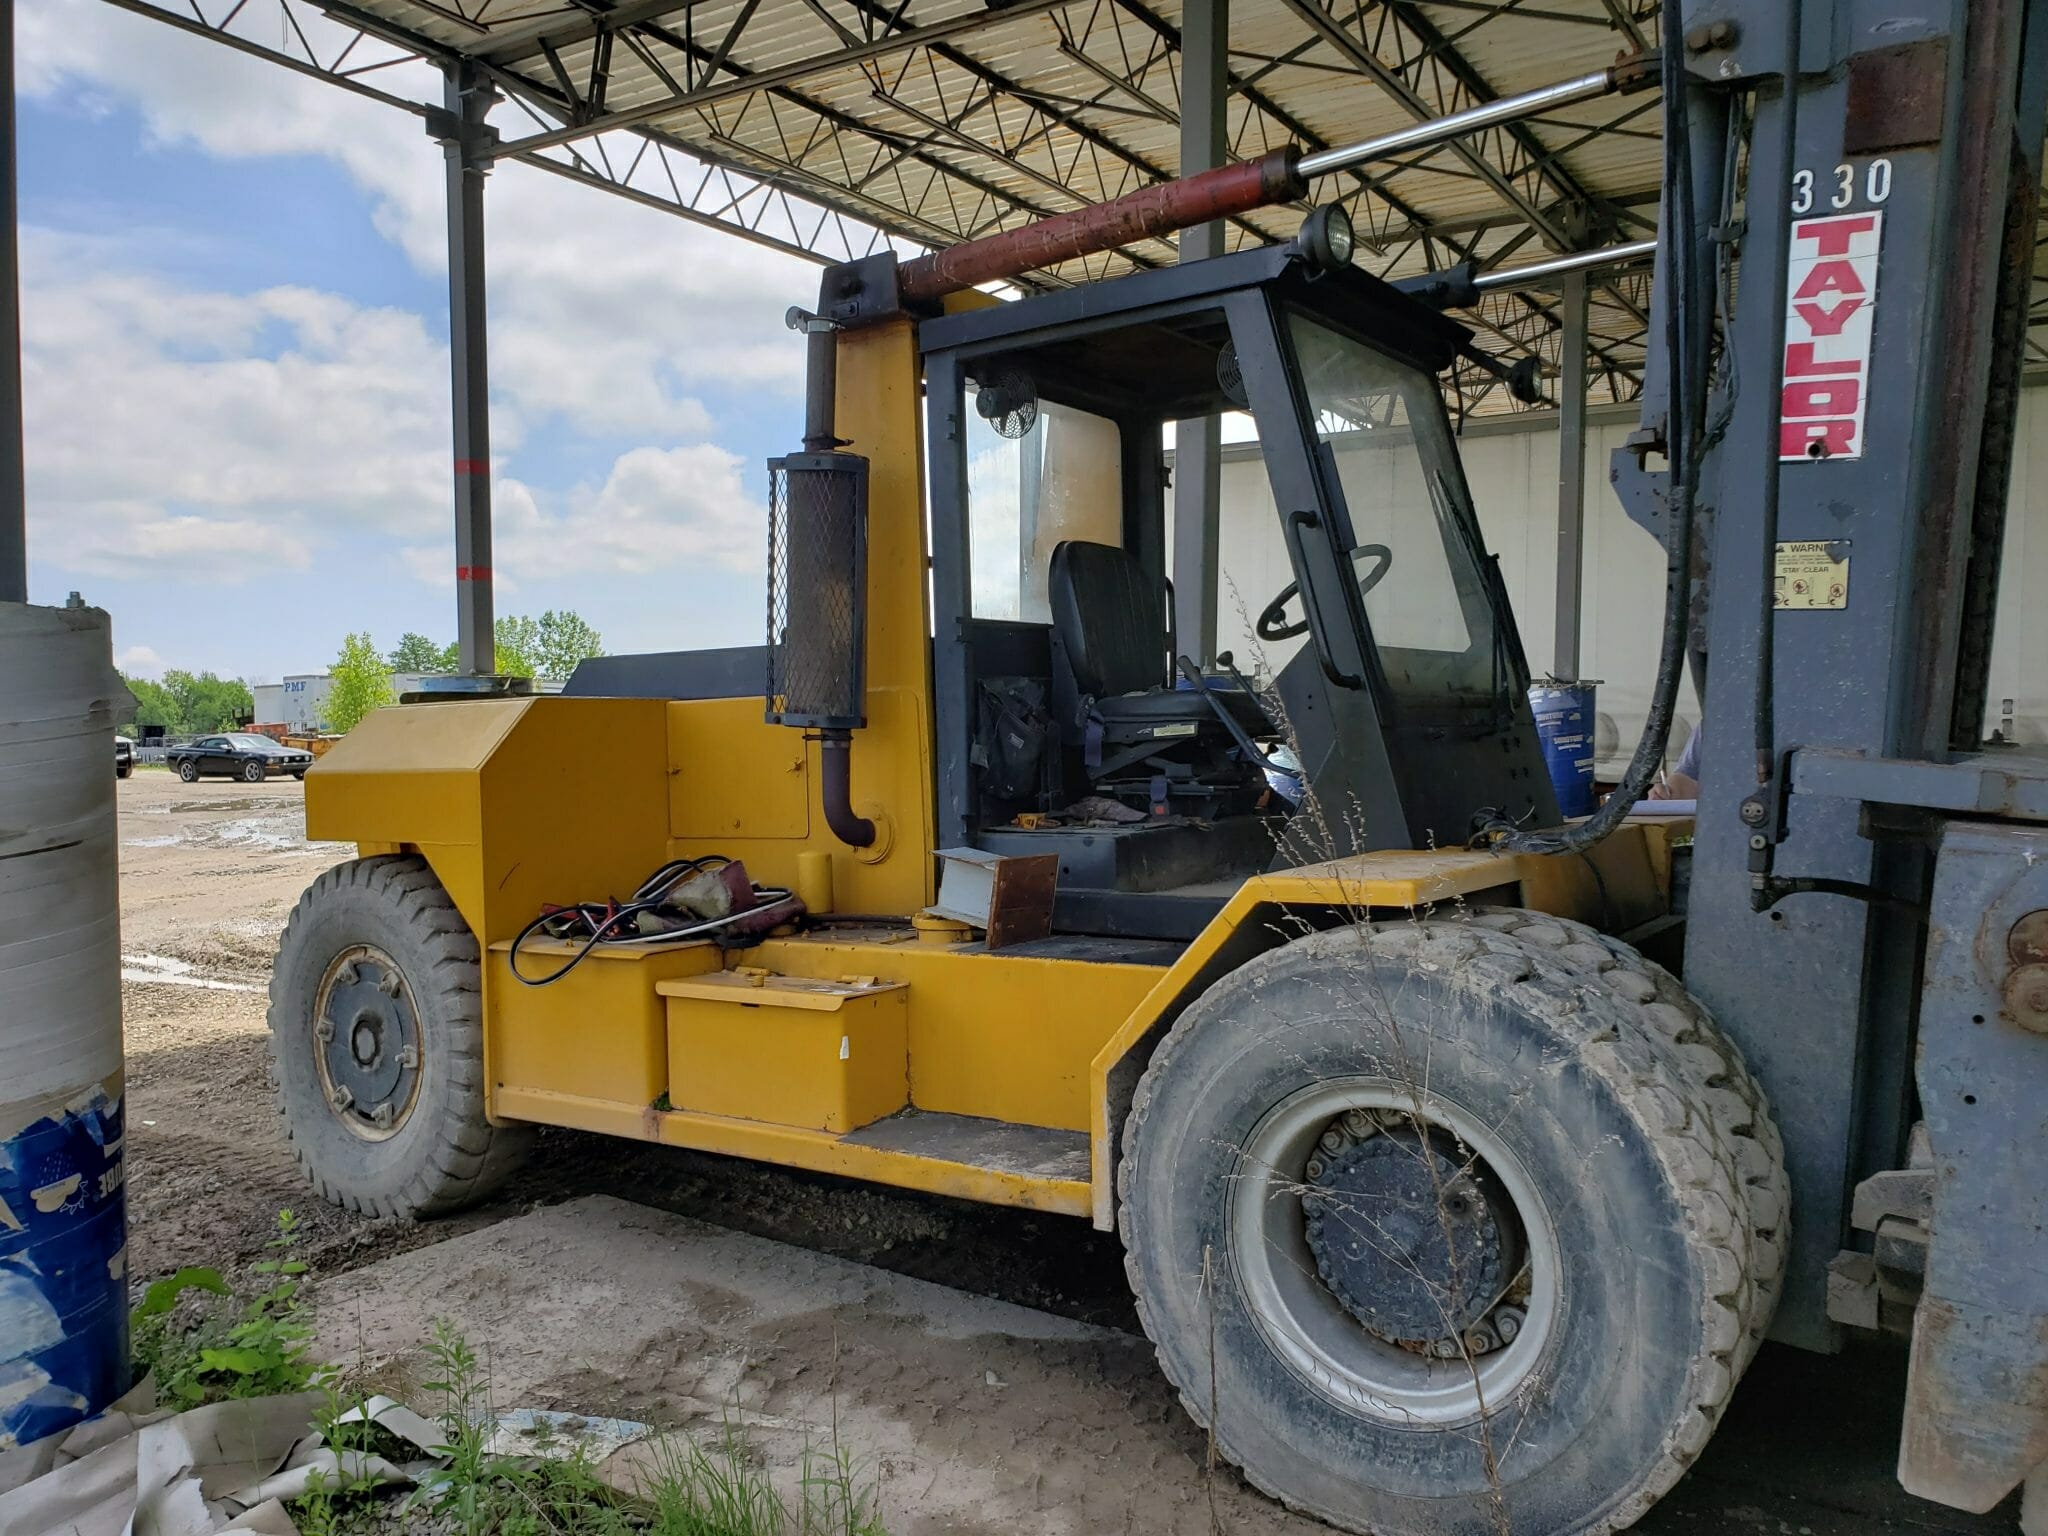 Used Forklifts From 30 0001lb To 60 000lbs Capacity For Sale Affordable Machineryaffordable Machinery